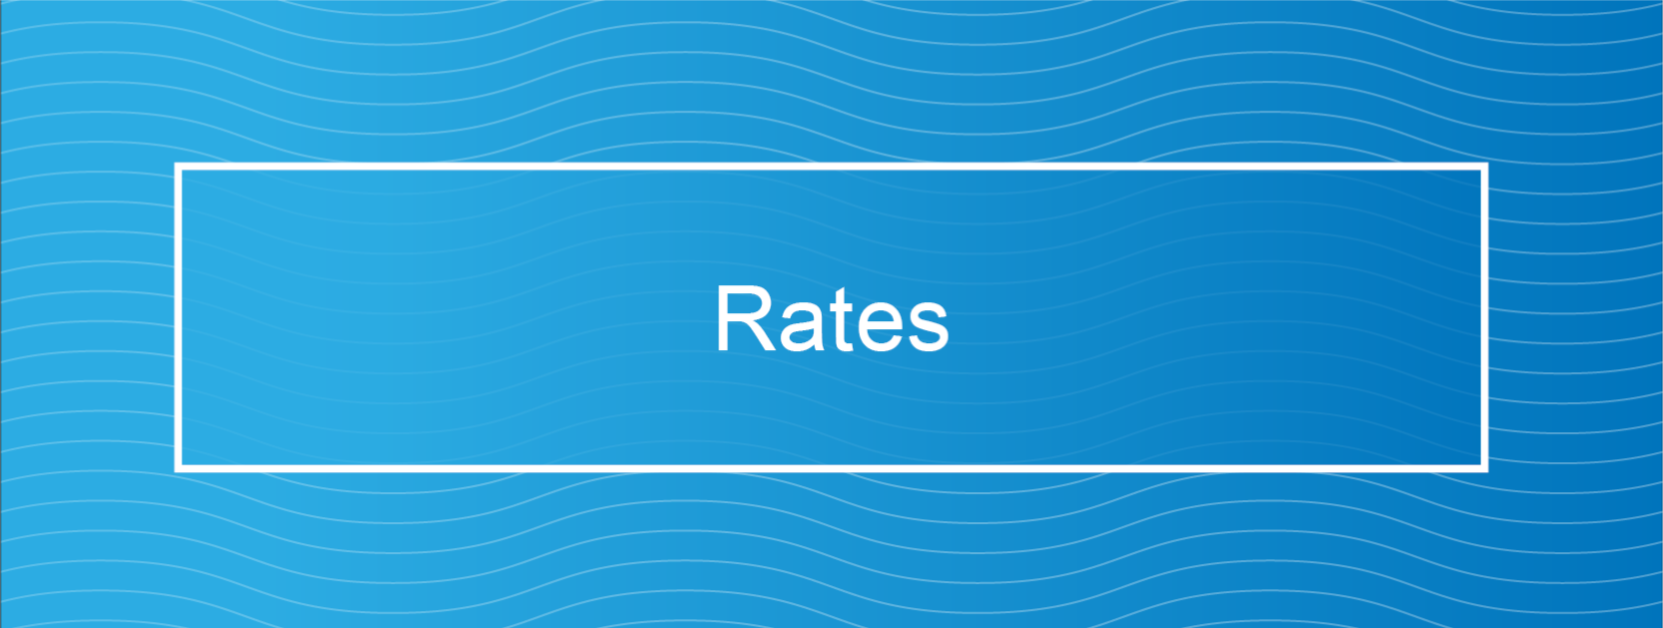 Water Services Rates